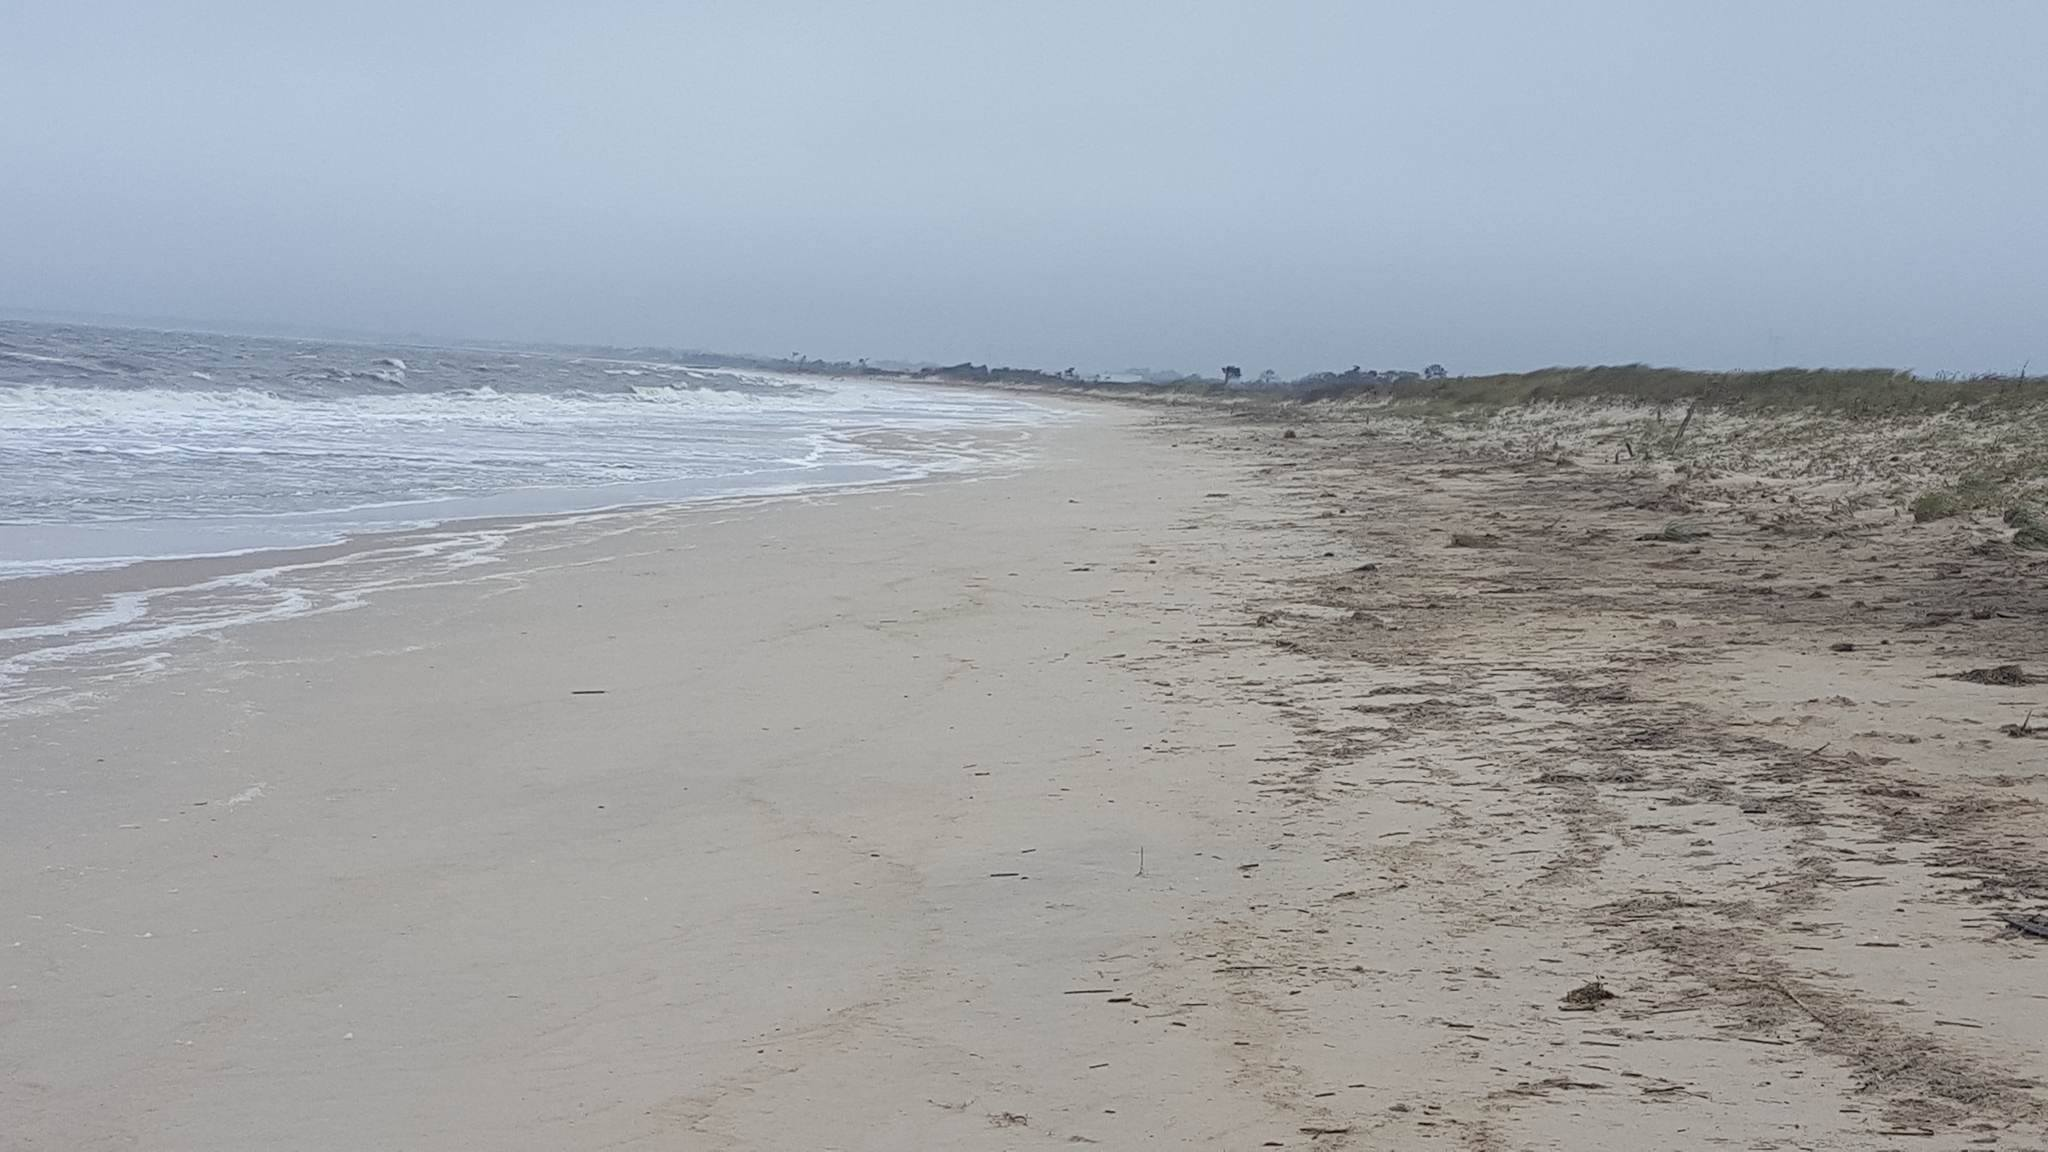 Beach Plum Island State Park, flood of 2016, delaware,sussex county, broadkill beach